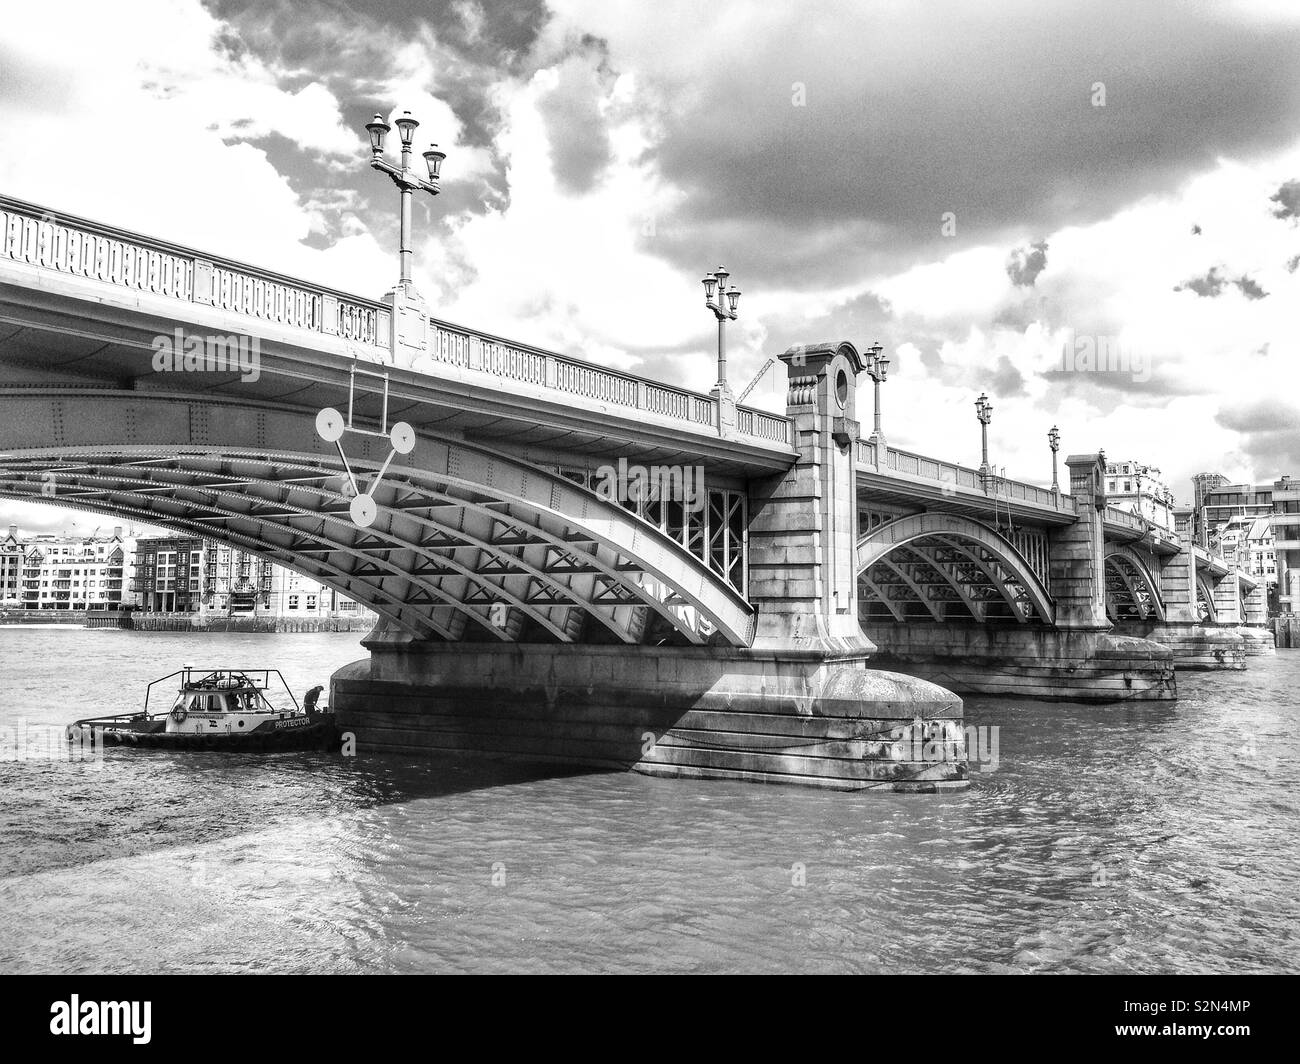 A boat moored under the arches of Southwark Bridge on the River Thames in London, England, looking towards the north bank. - Stock Image